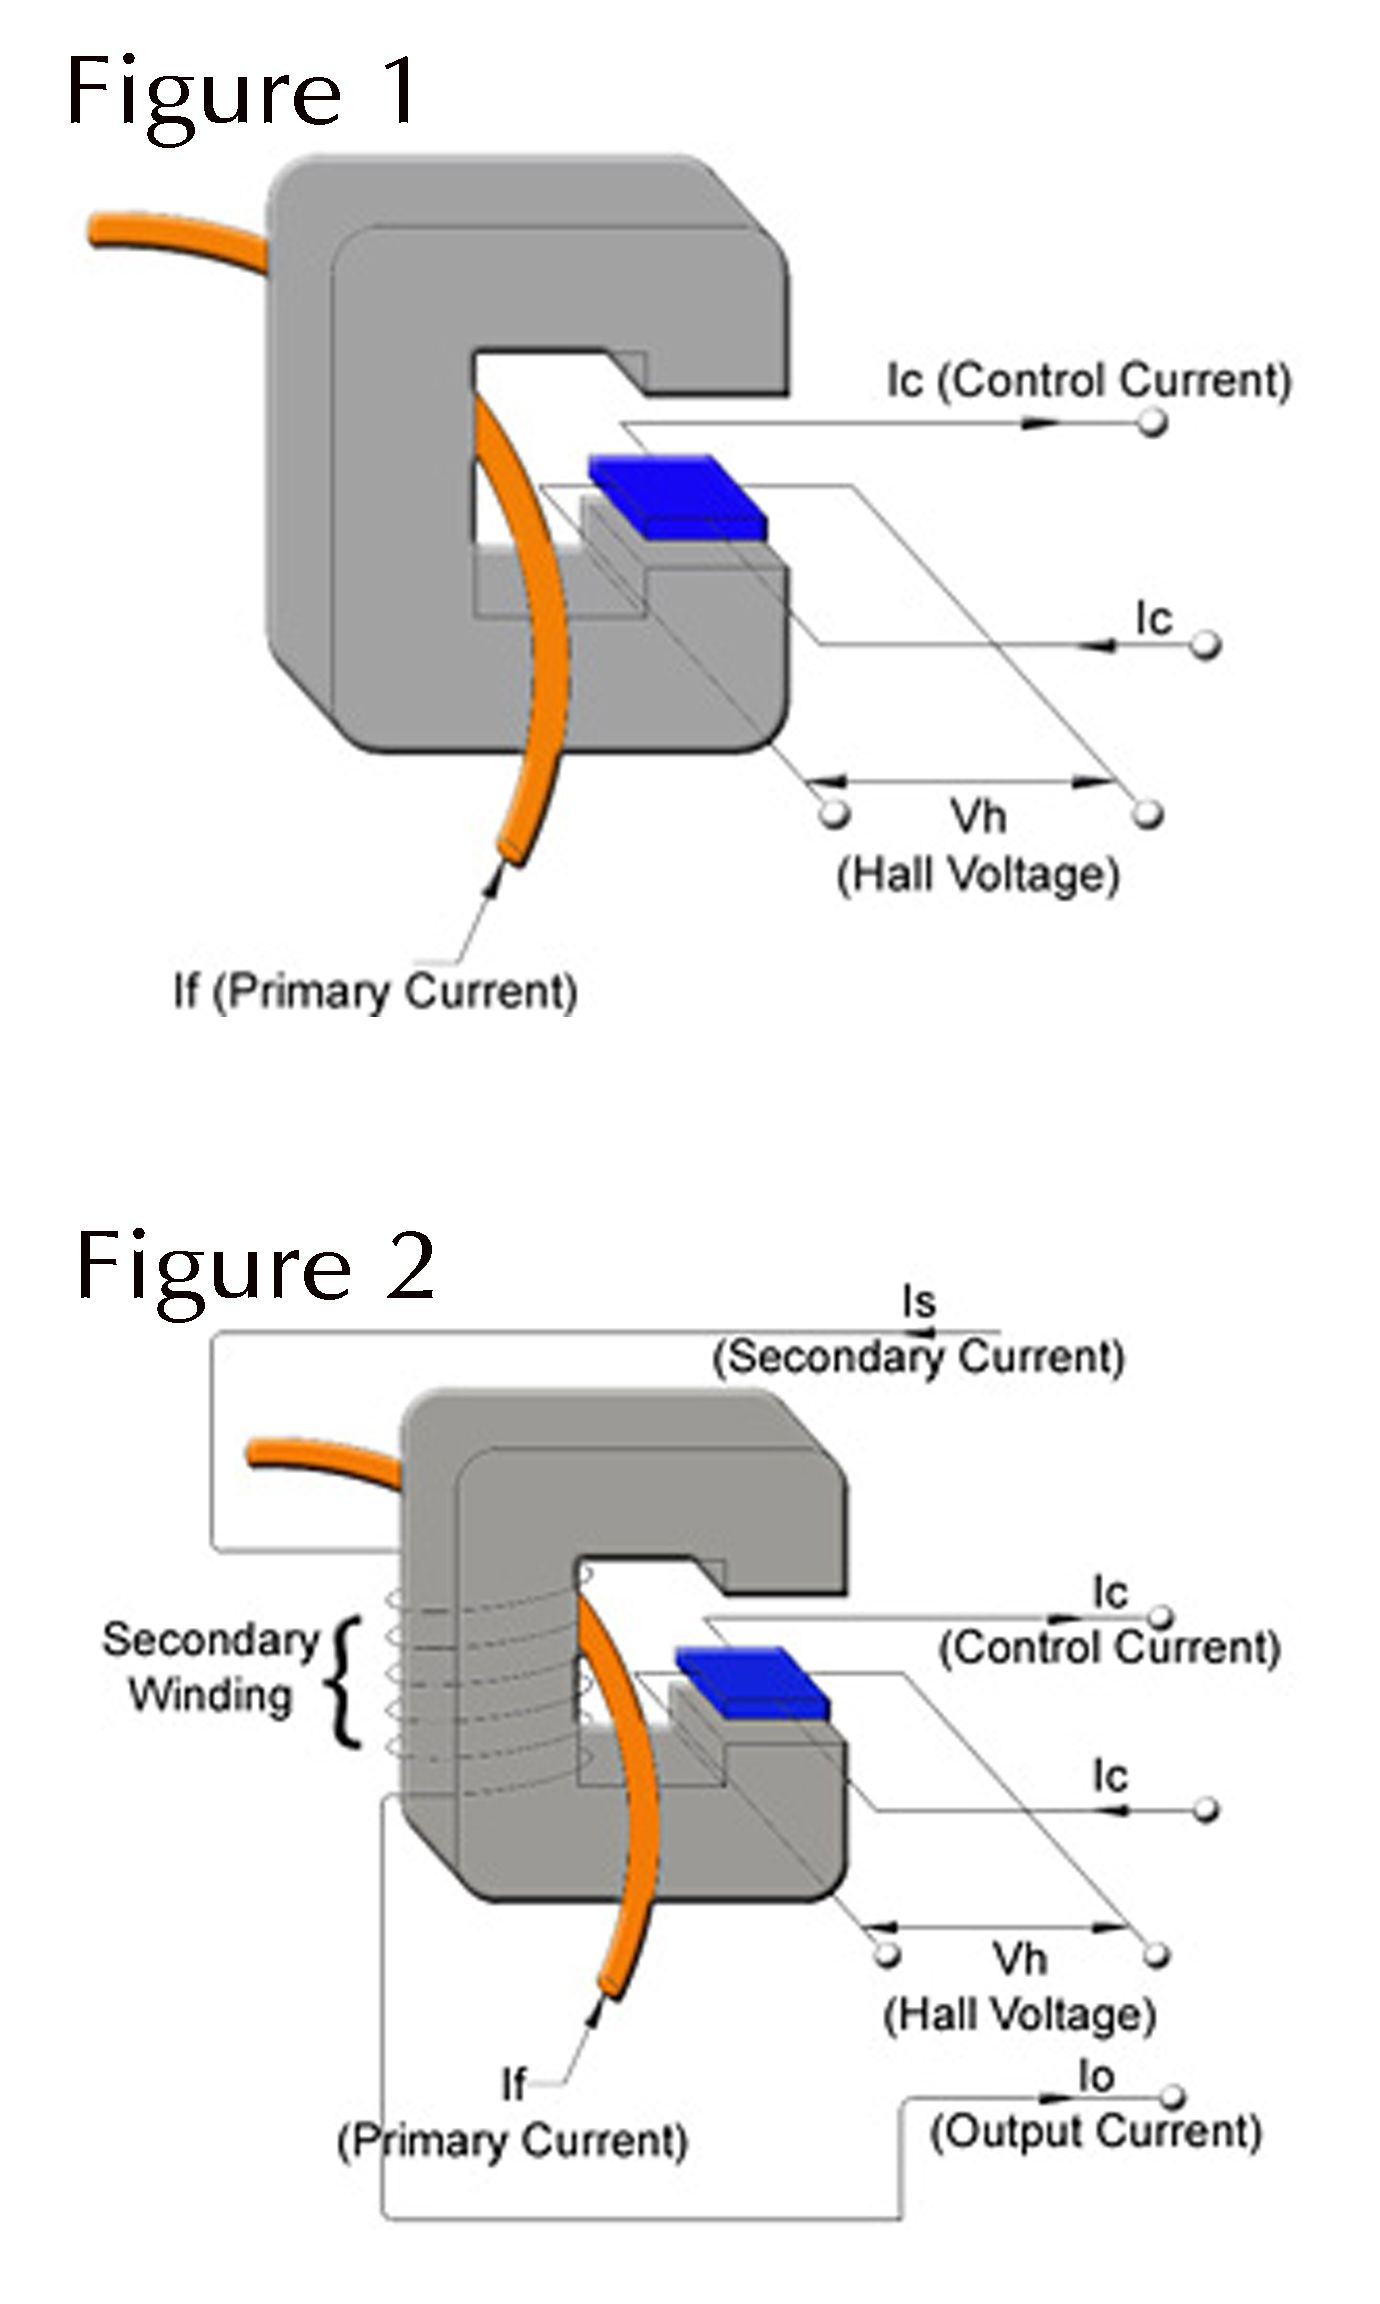 Current Sensor - Open and closed loop operating principle